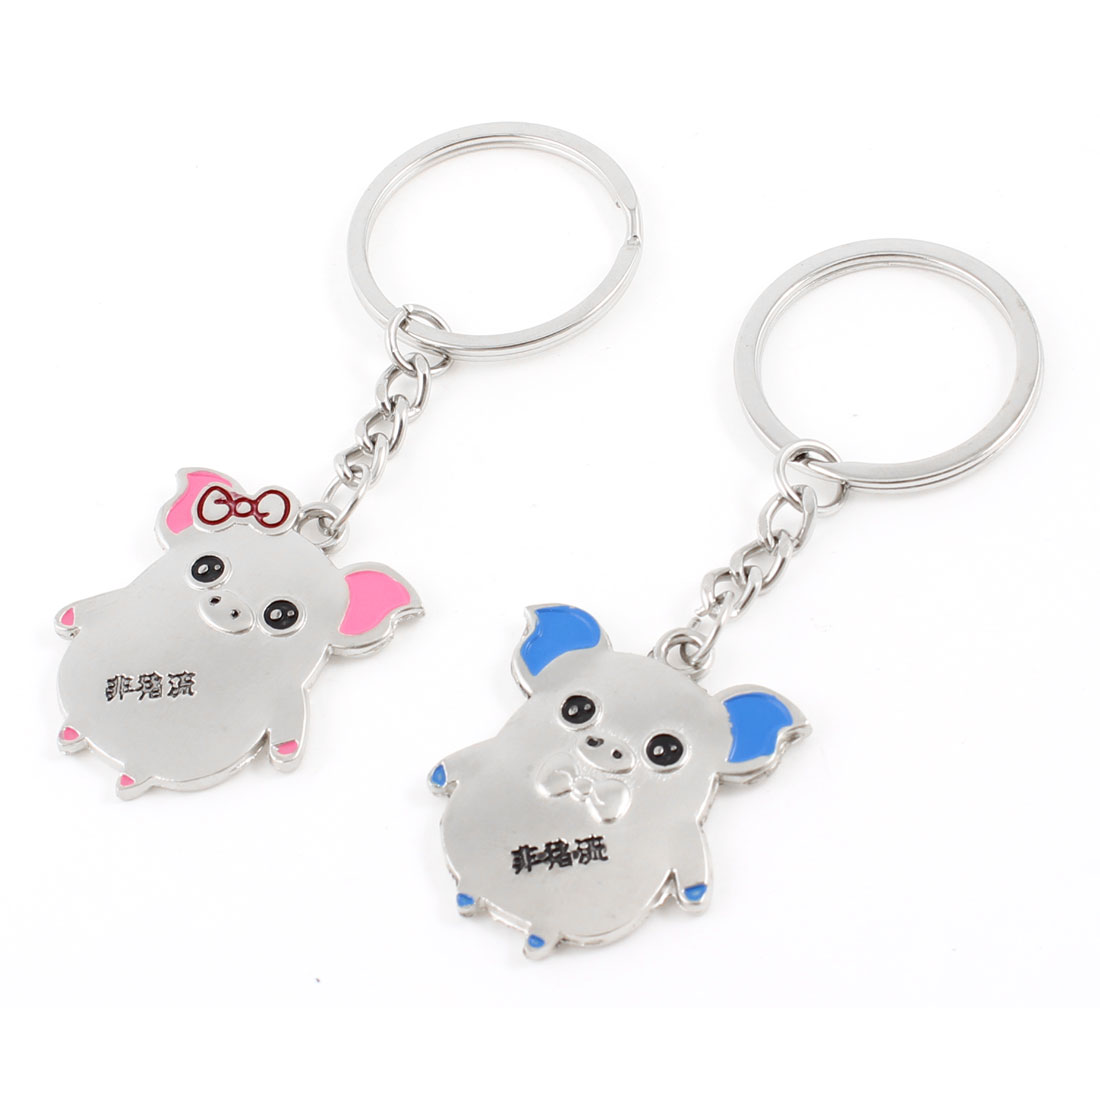 Lovers Handbag Decoration Cartoon Pig Shaped Pendant Keychain Pair